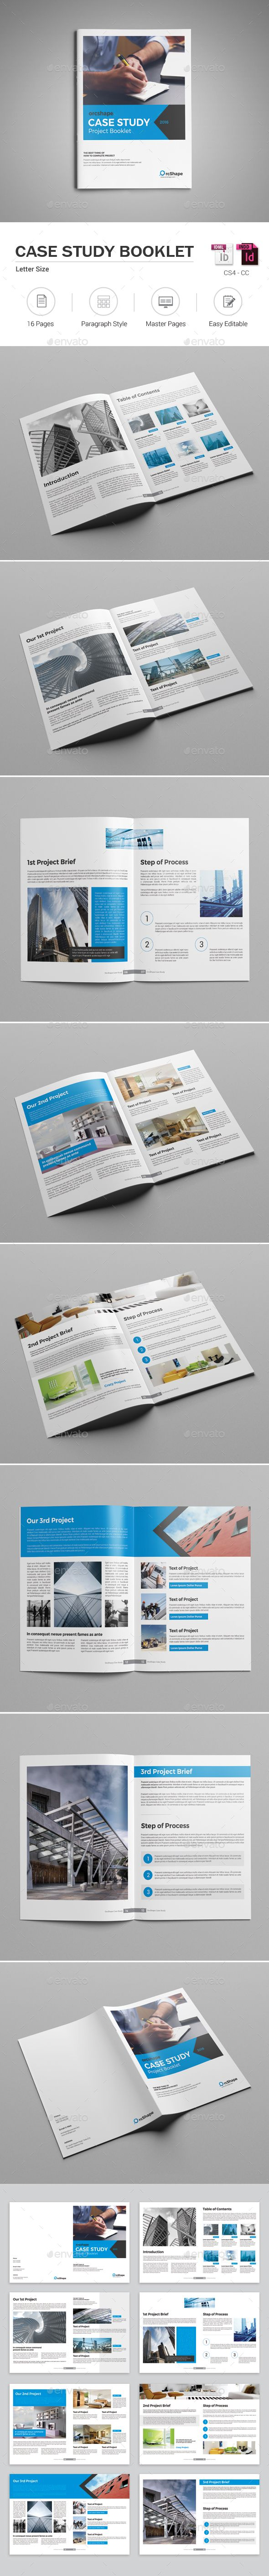 Case Study Booklet | Booklet template, Template and Brochures